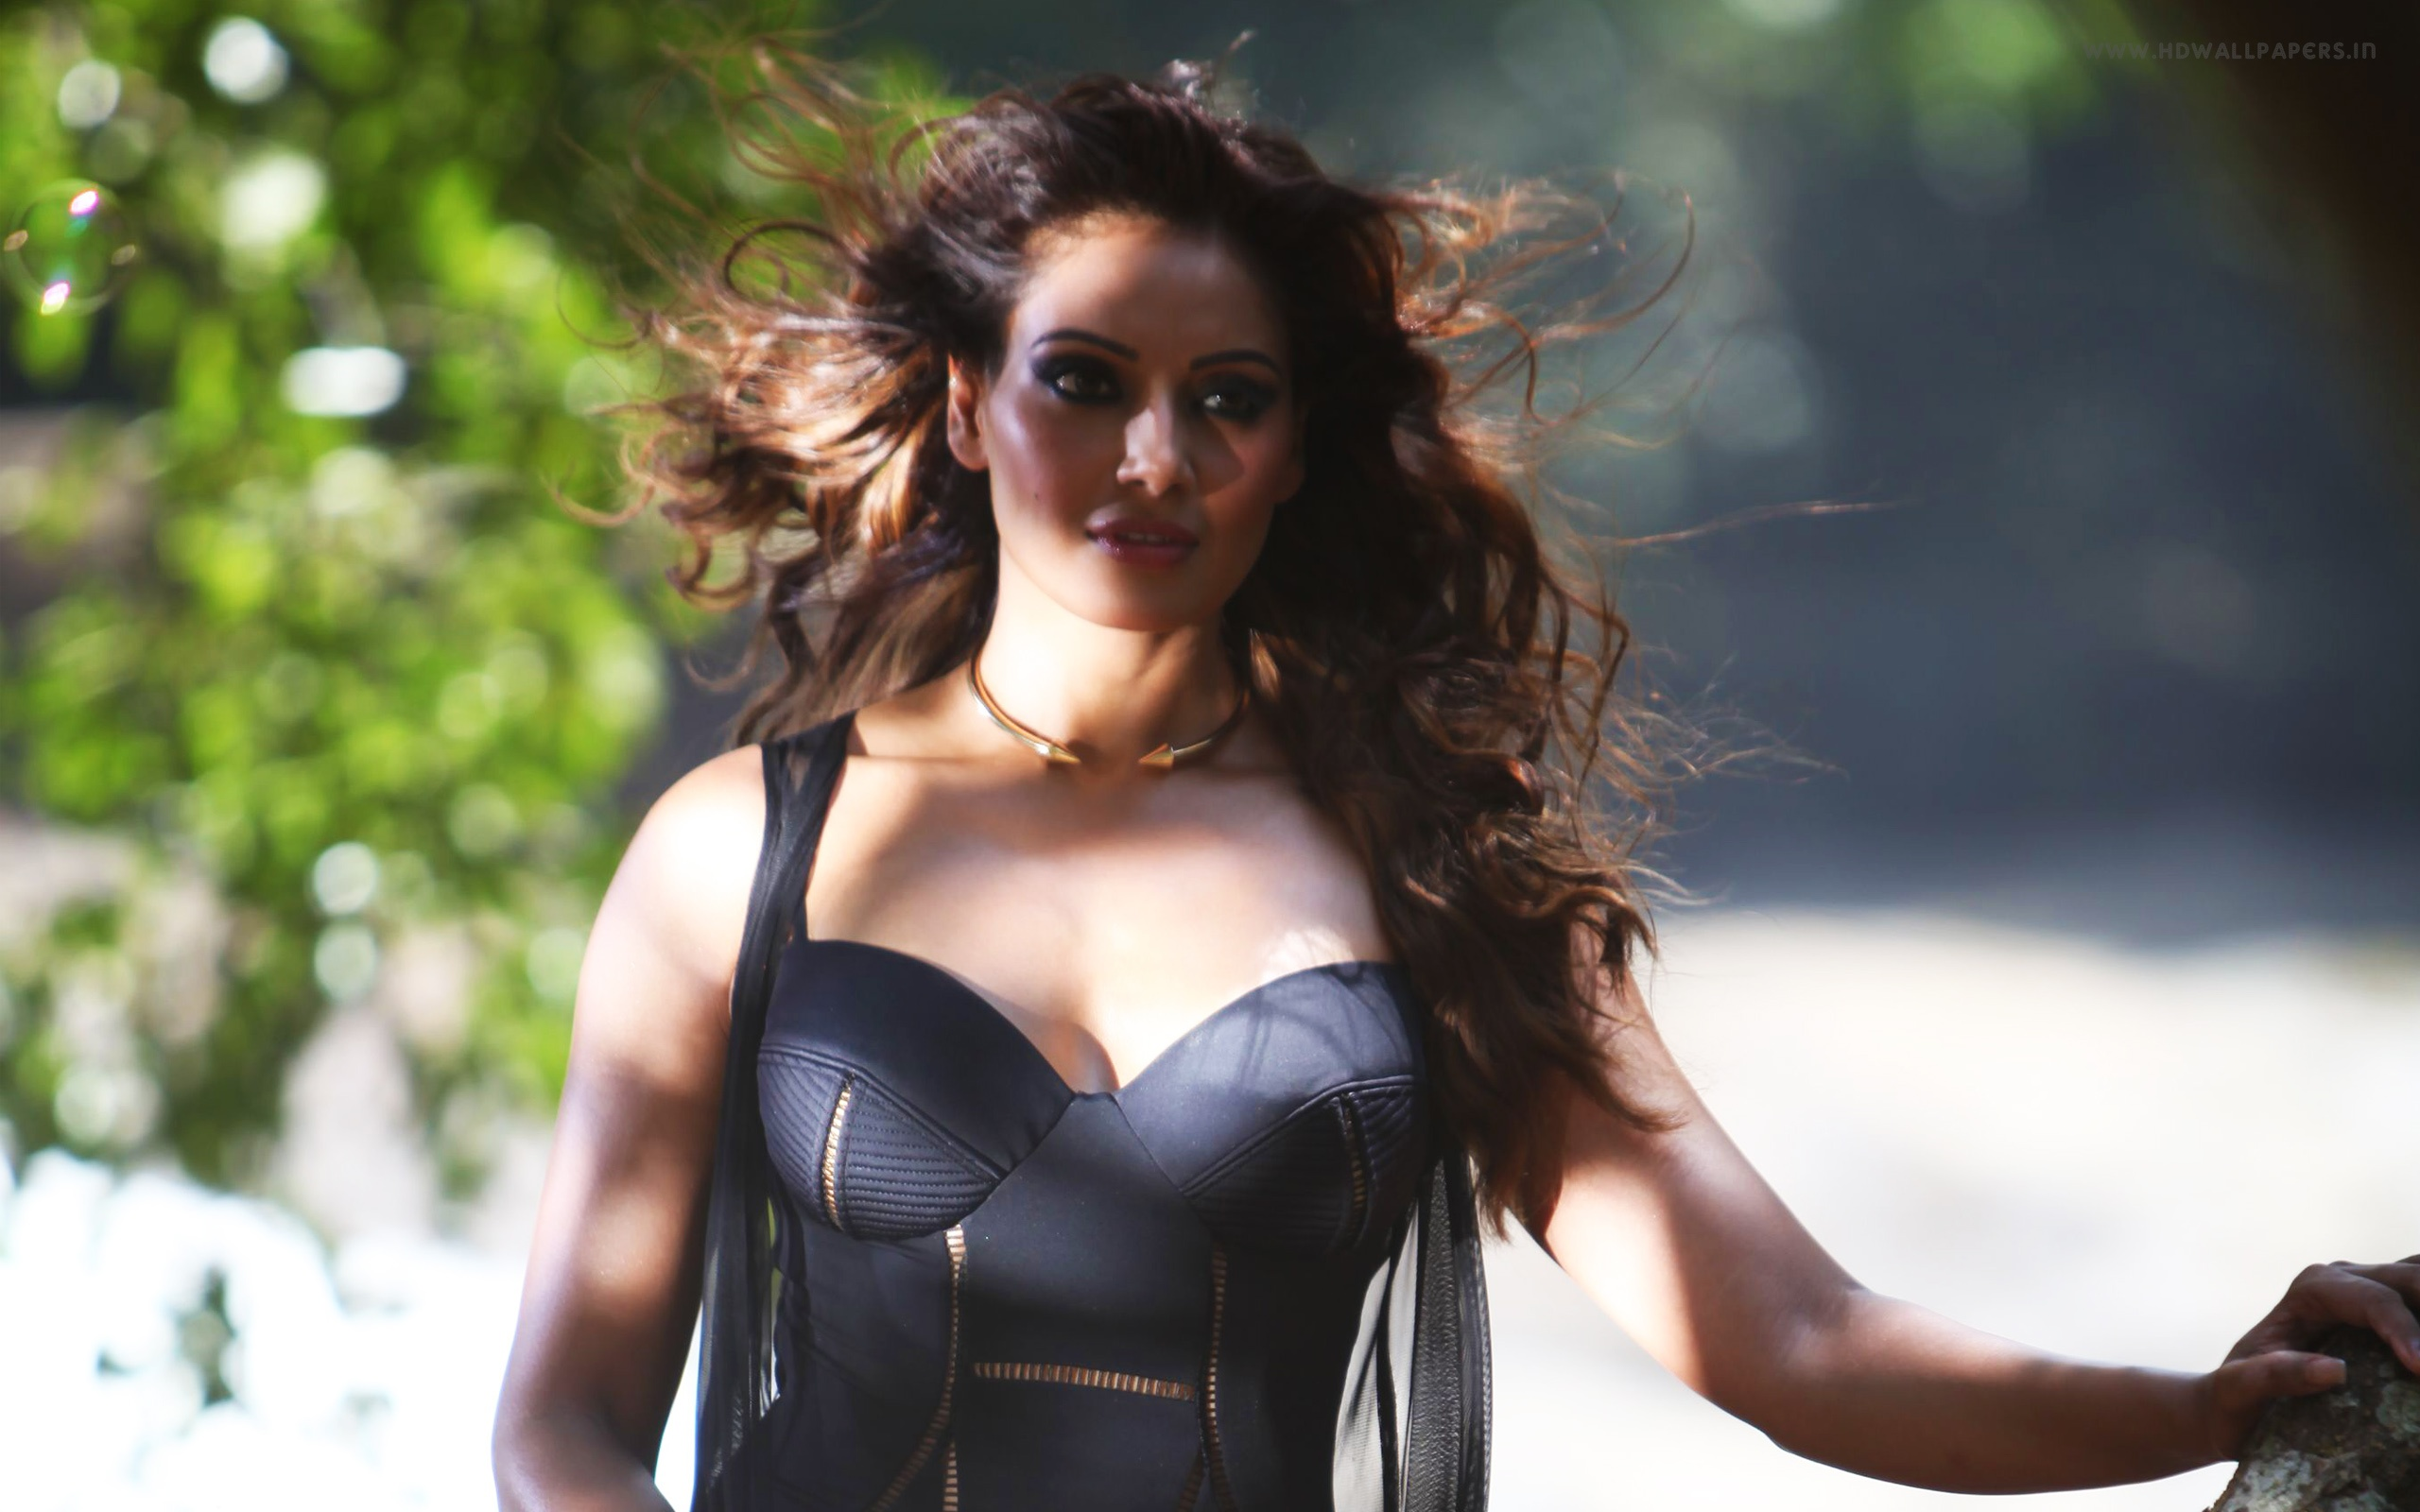 bipasha basu in alone wallpapers in jpg format for free download